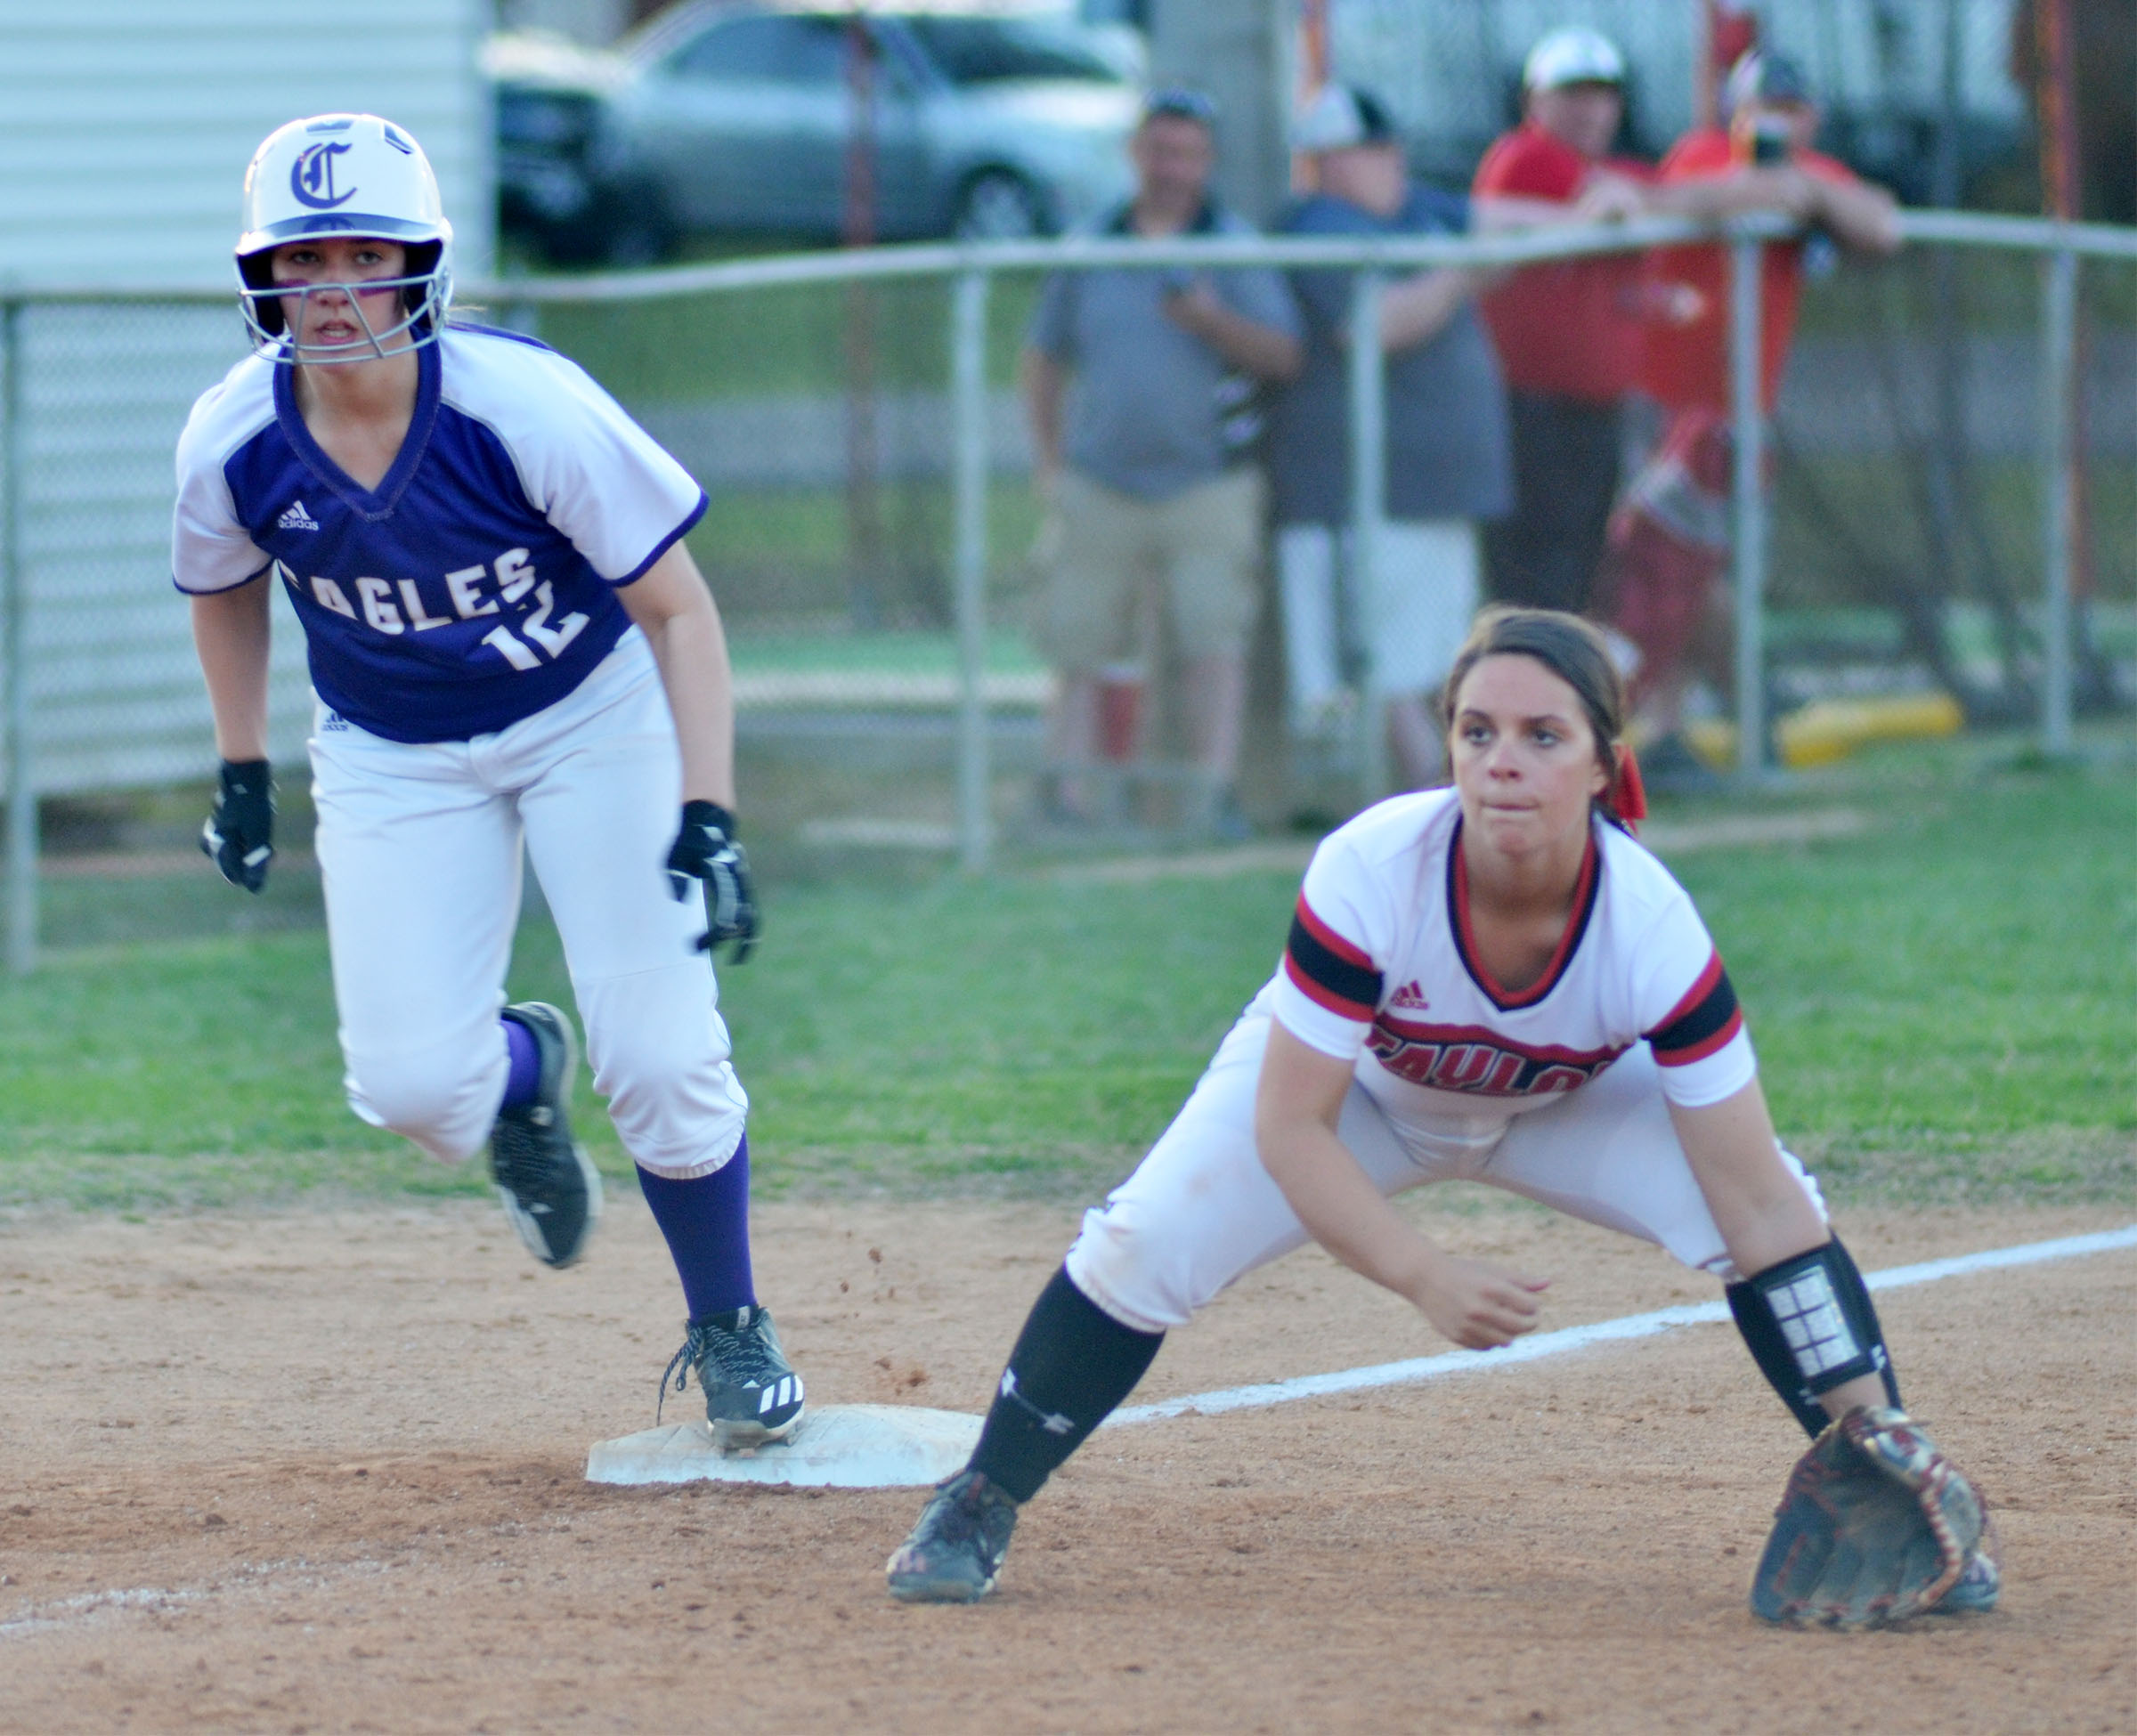 Campbellsville Middle School eighth-grader Abi Wiedewitsch looks to run home.